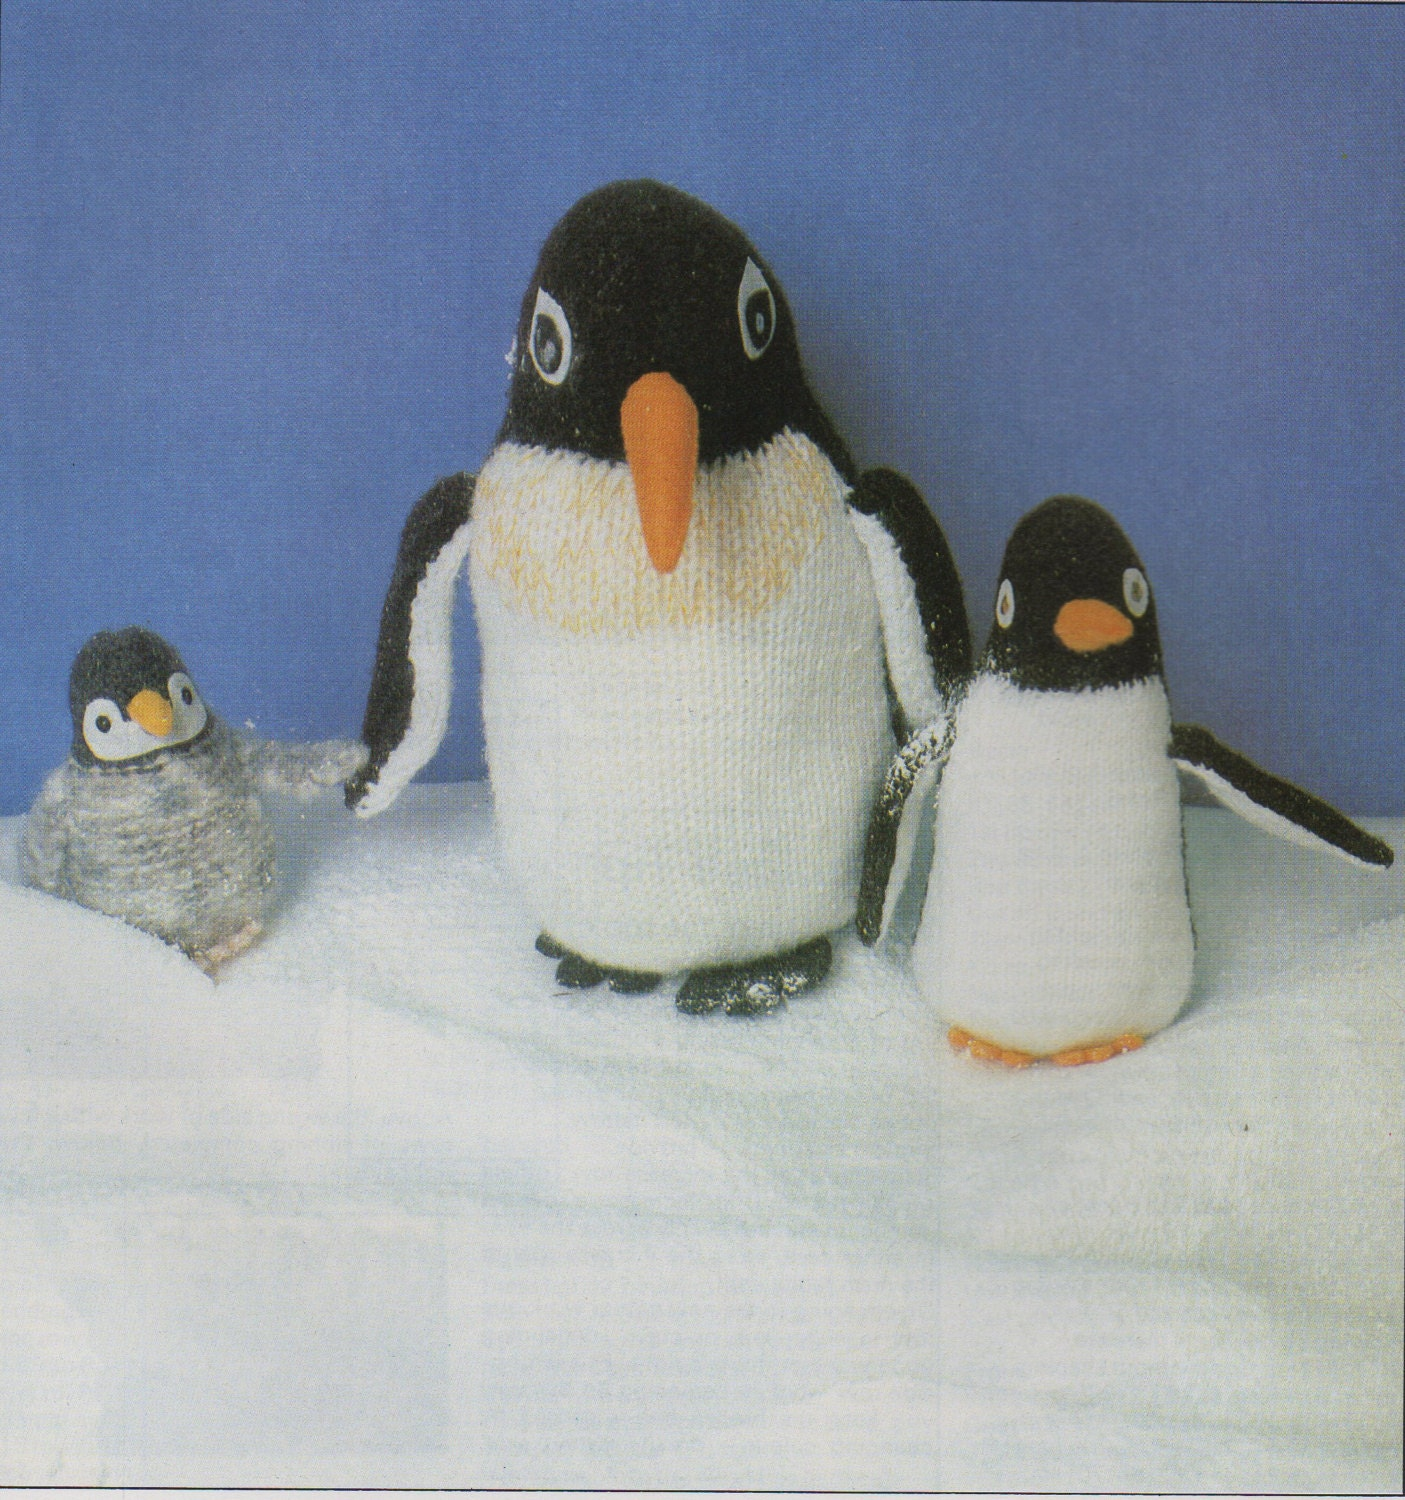 Penguin knitting pattern knitted penguins large small chick zoom bankloansurffo Images